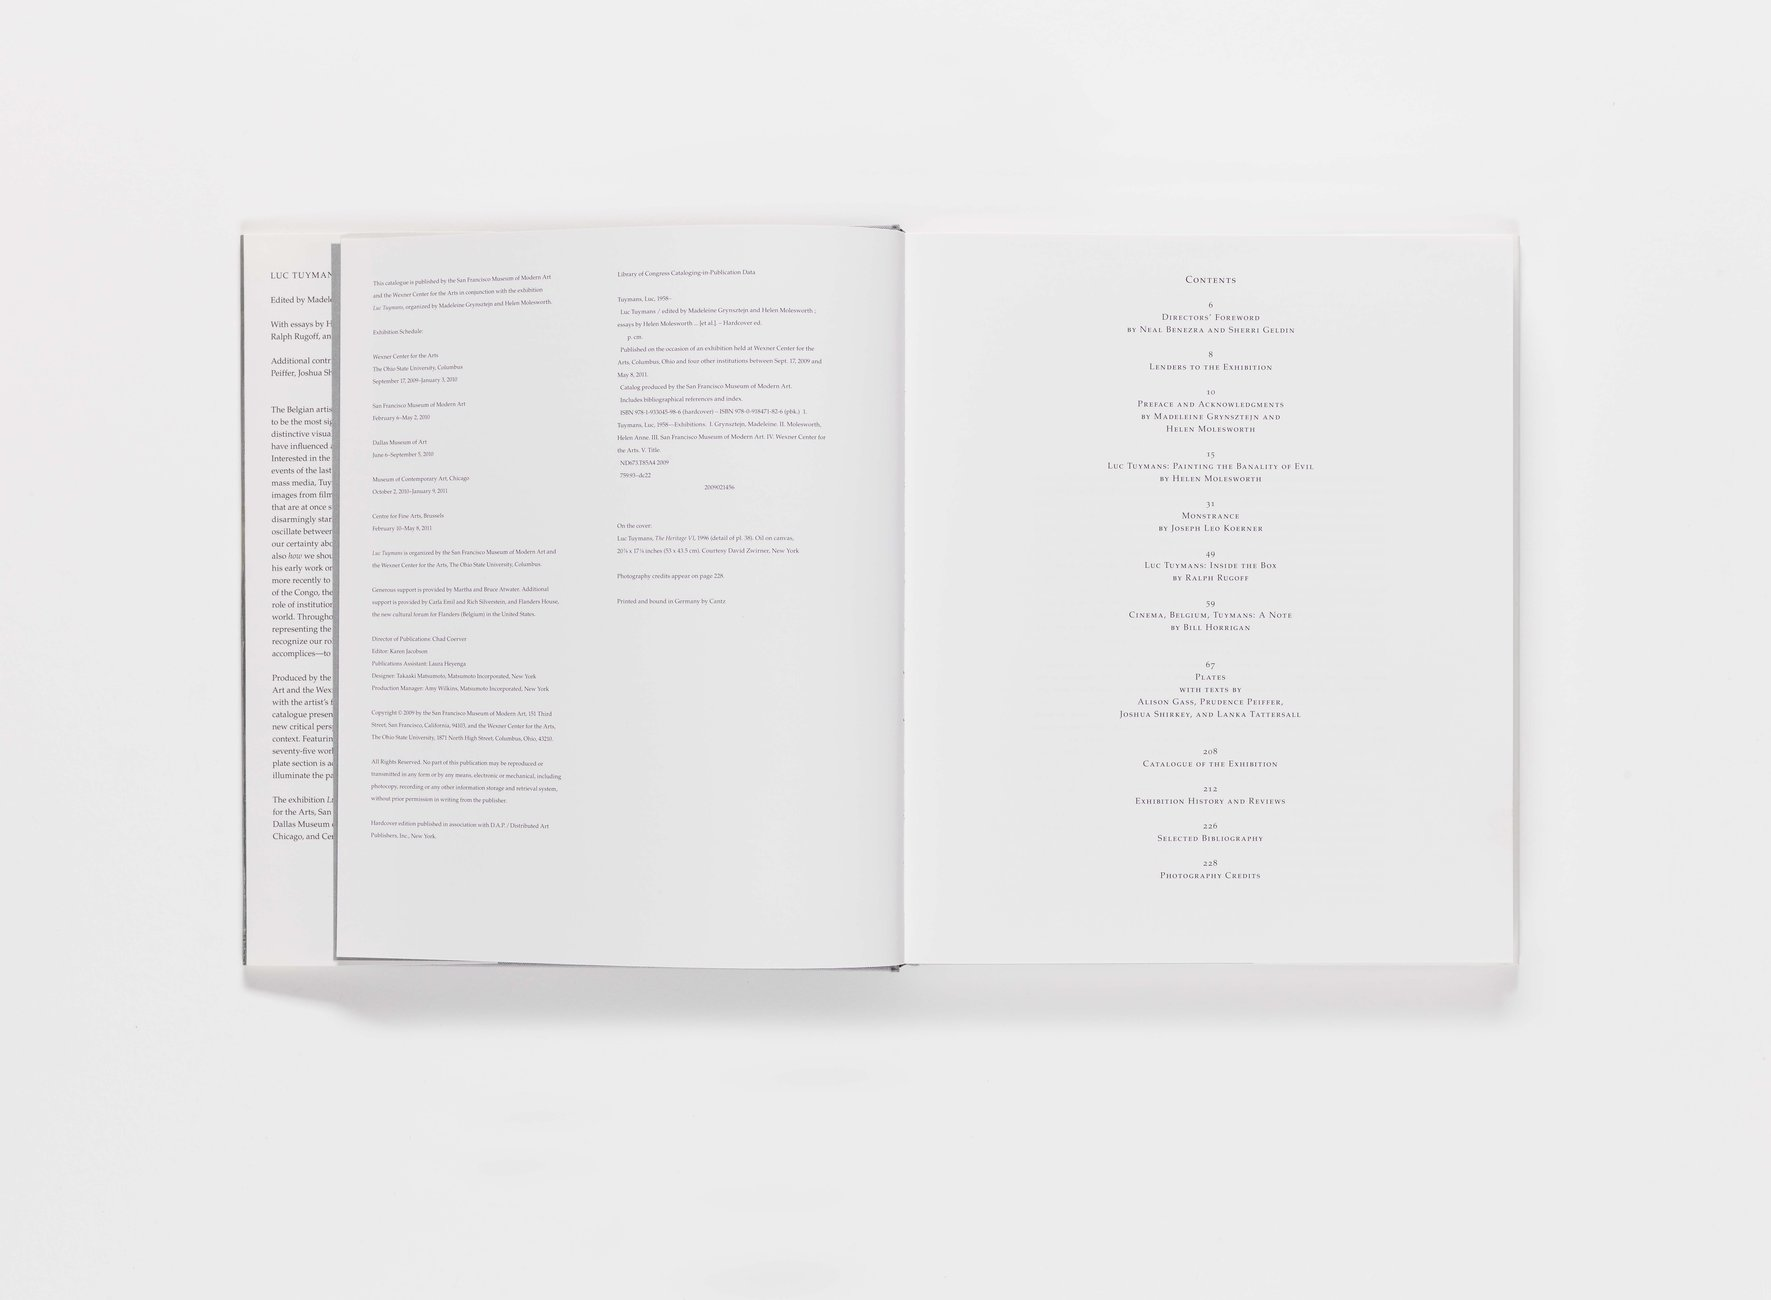 Luc Tuymans publication table of contents